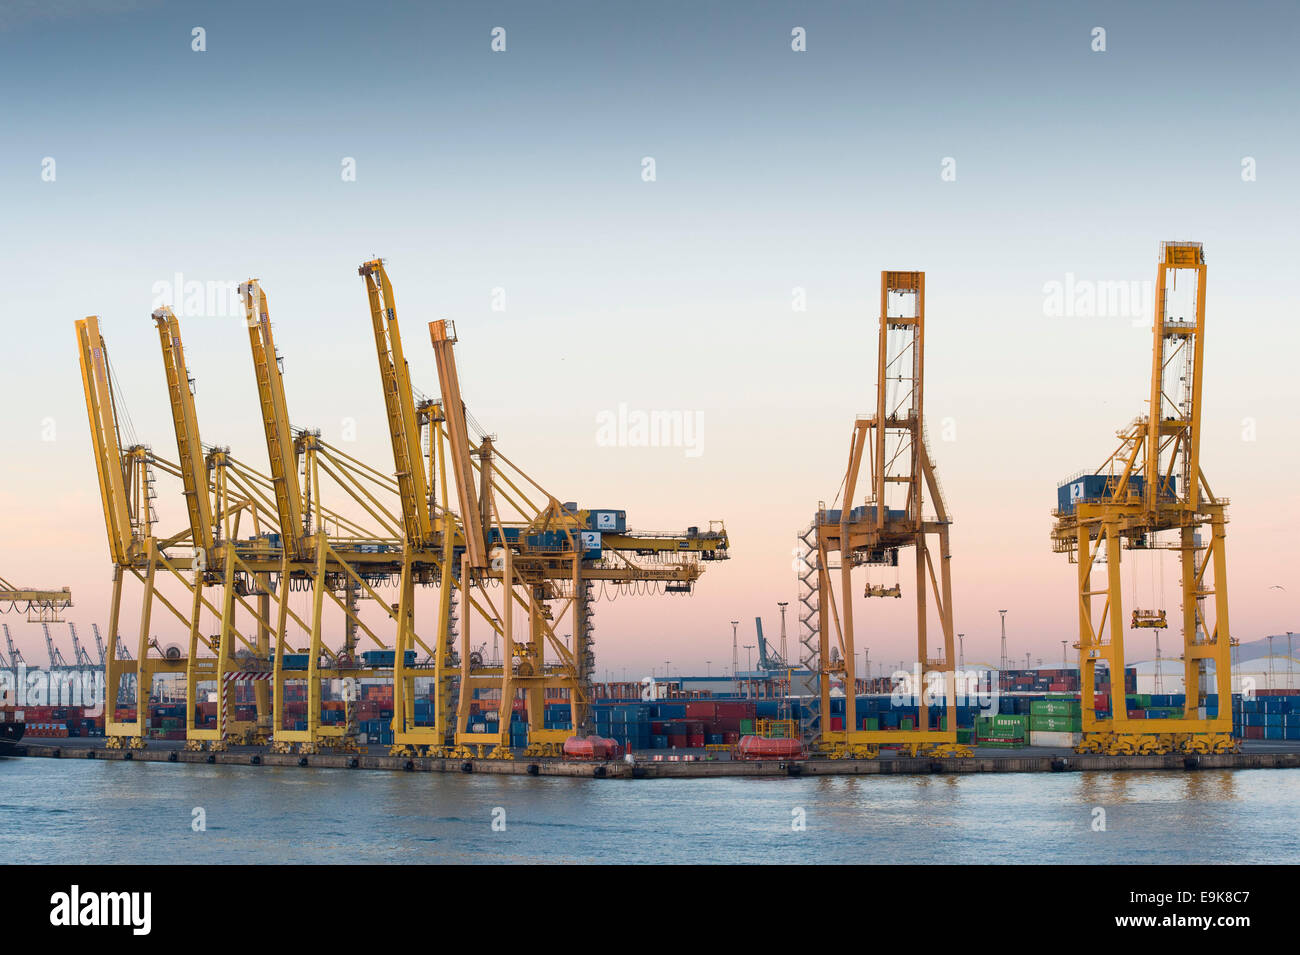 Yellow cranes move shipping containers at Barcelona's main port - Port de Barcelona - at sunrise. - Stock Image